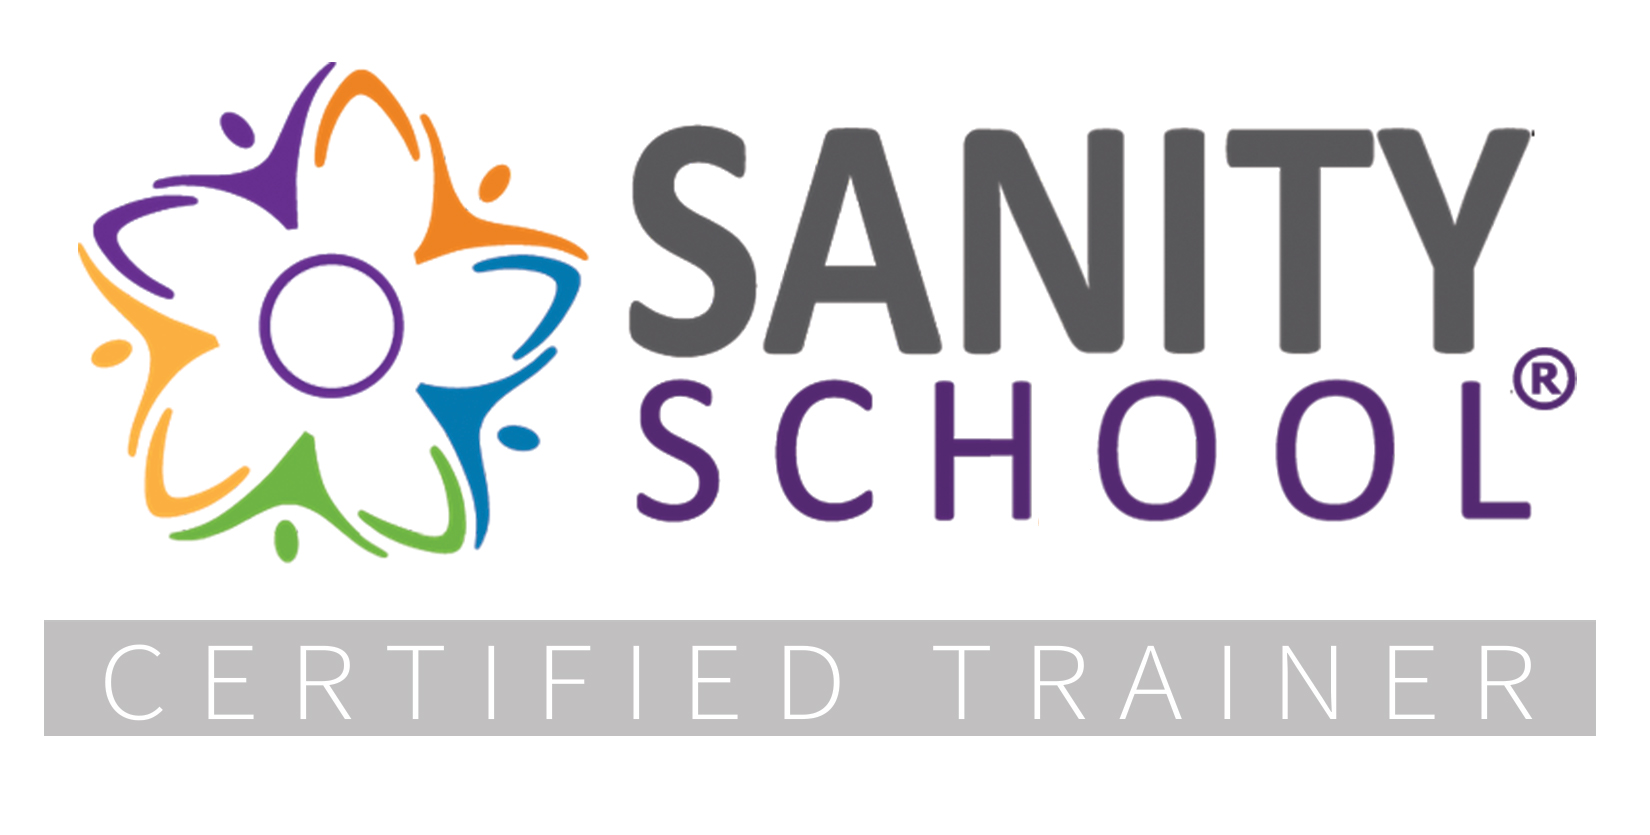 Sanity School (R) Certified Trainer logo